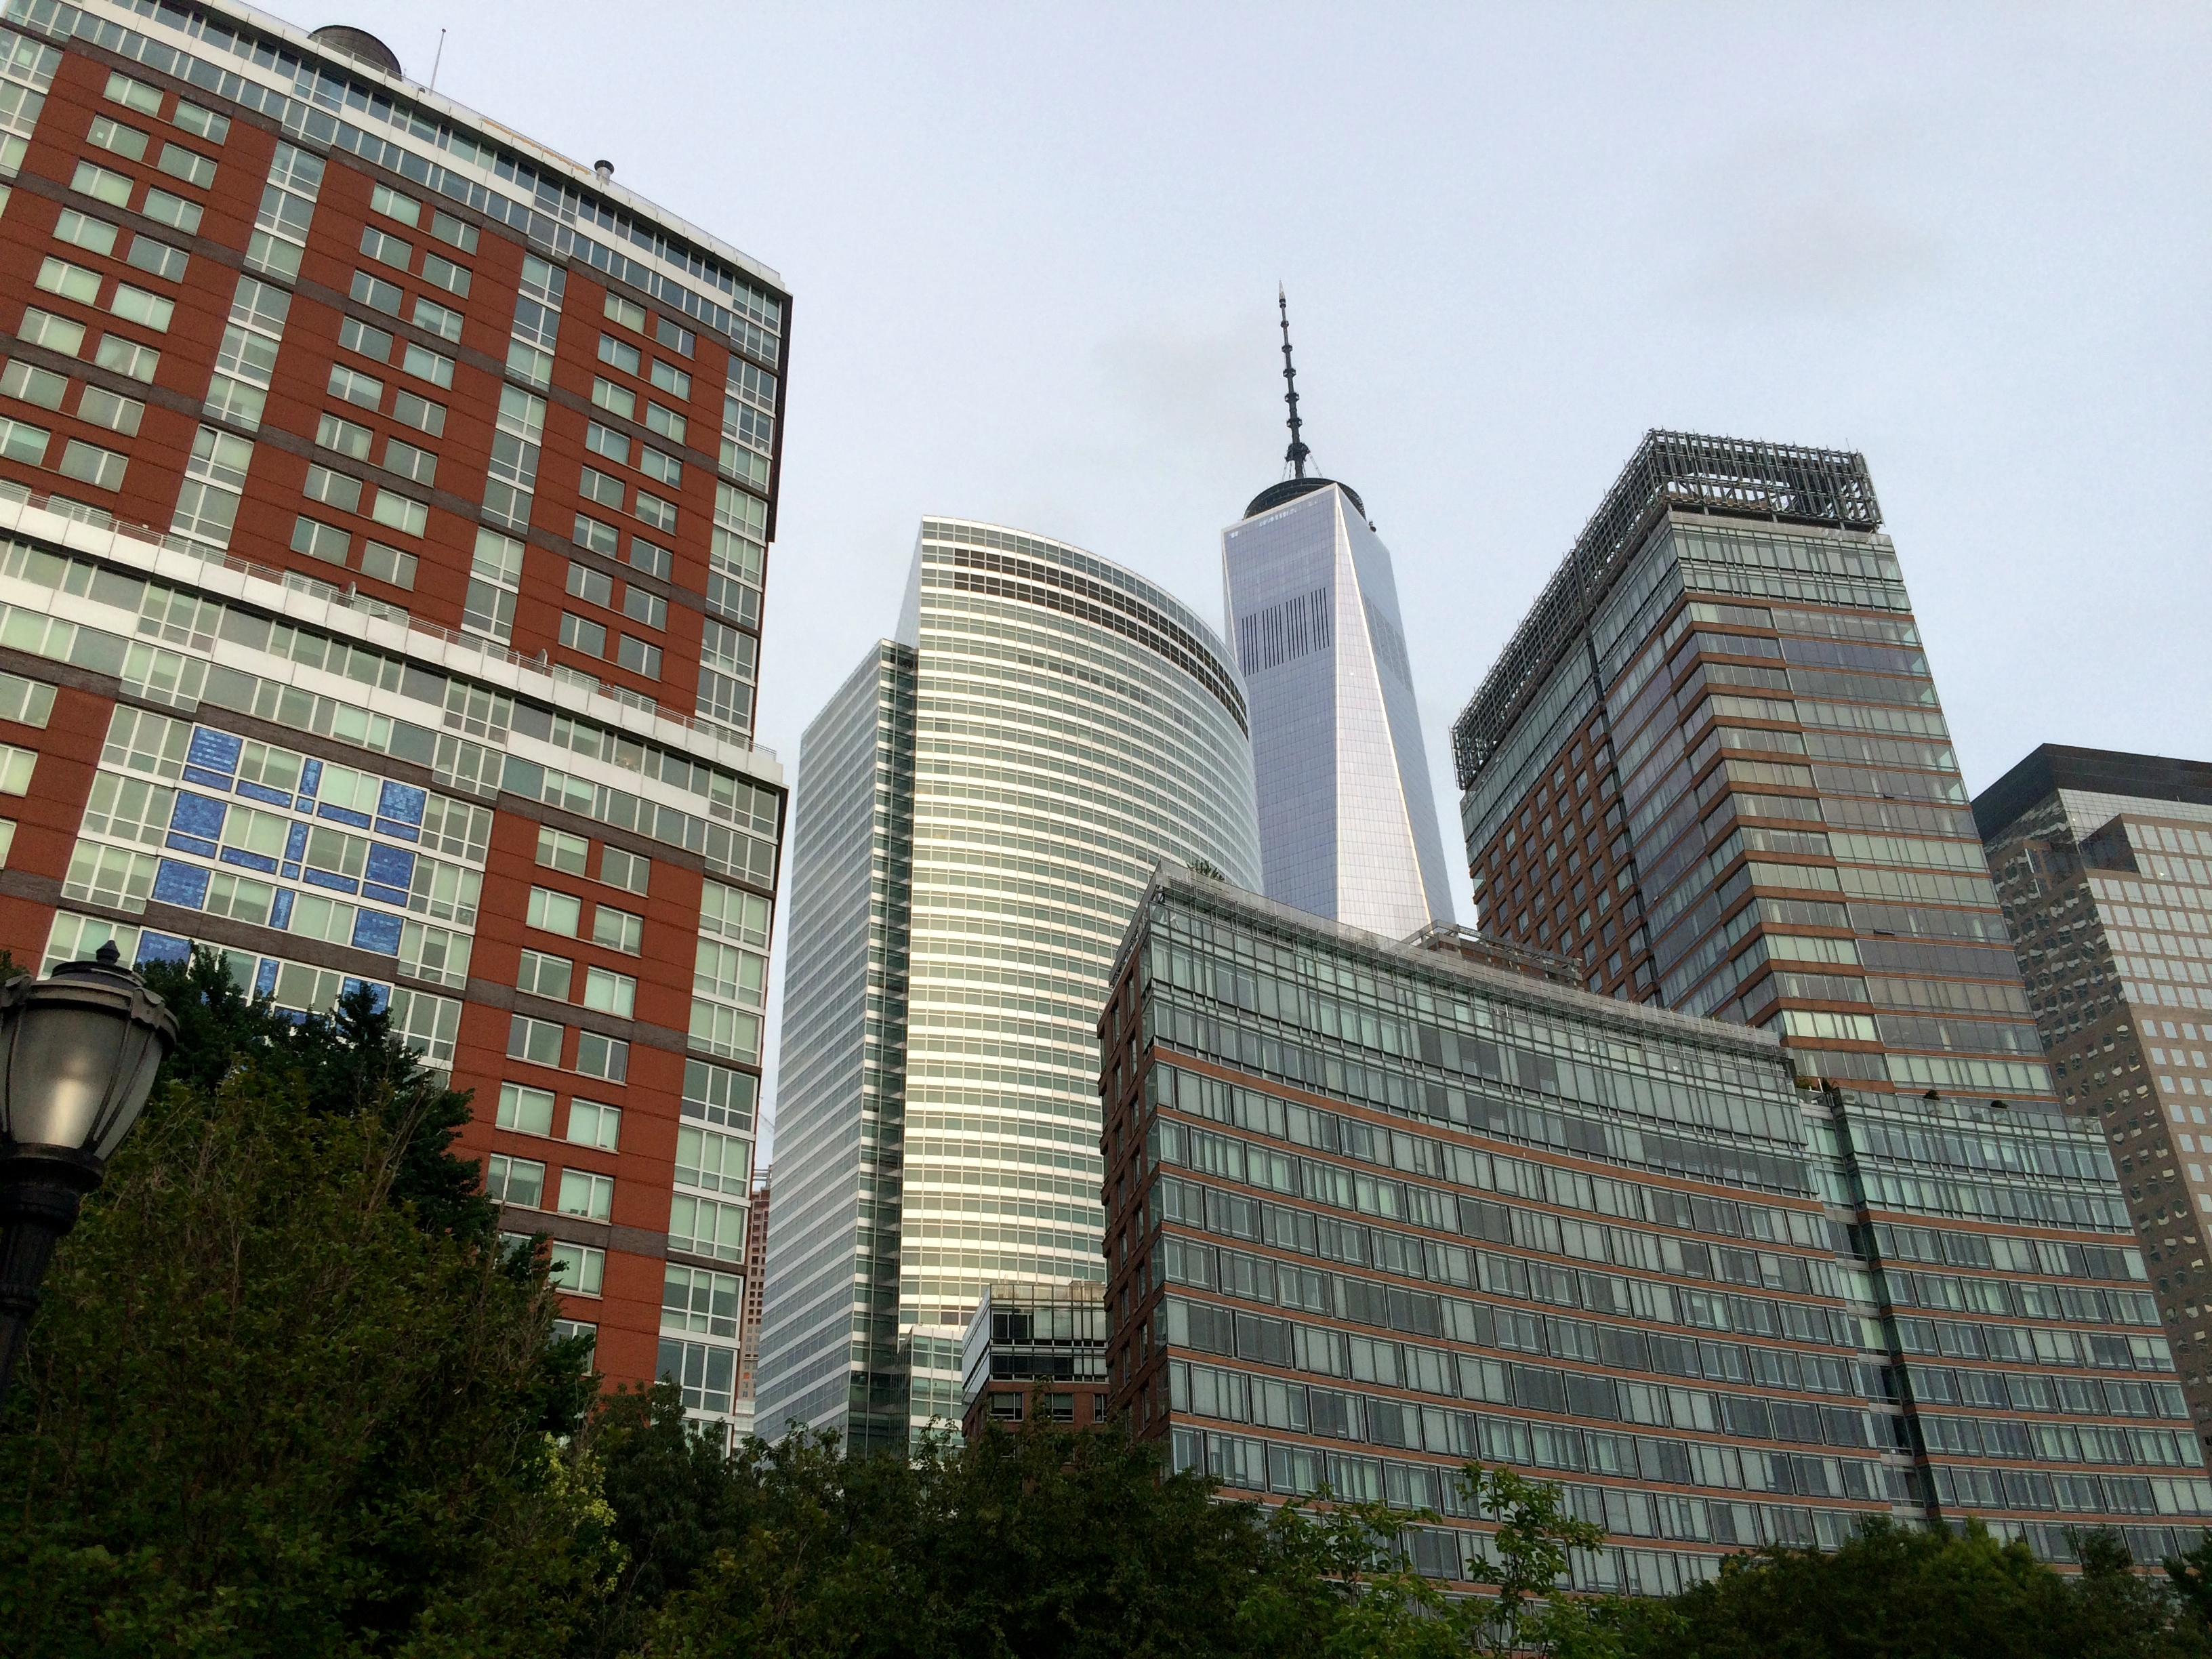 buildings in lower Manhattan, including World Trade Center